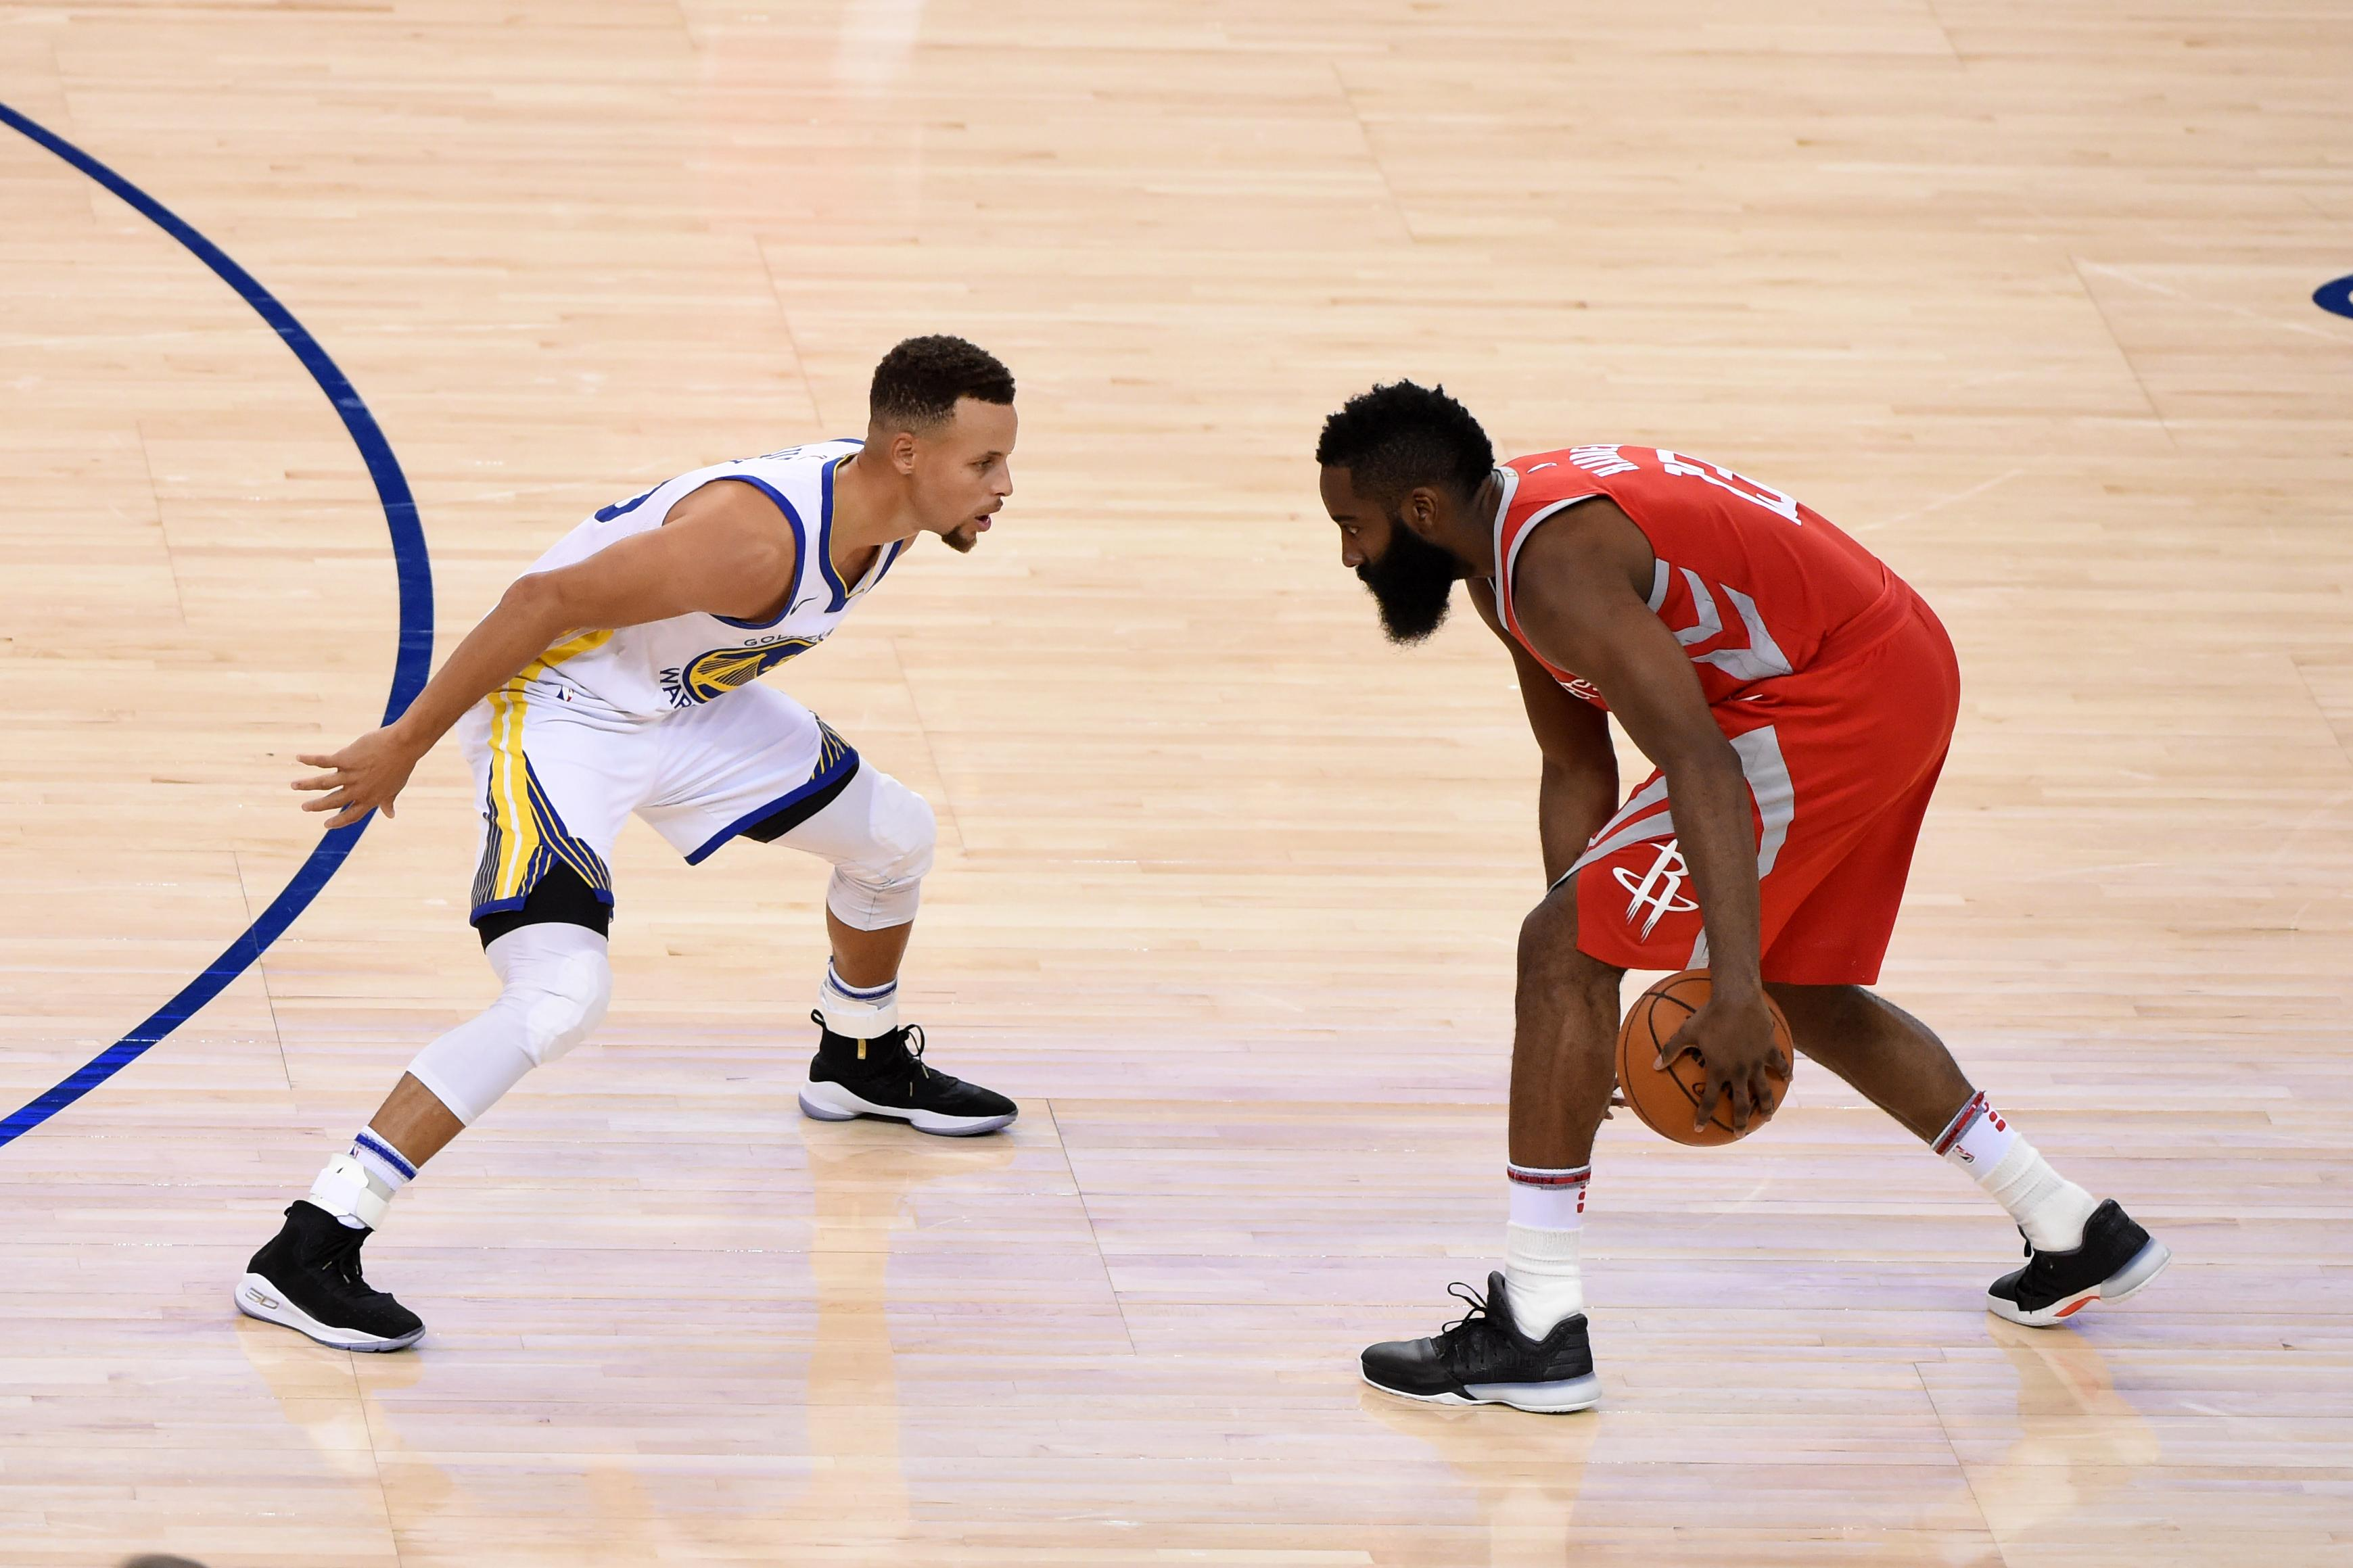 Rockets vs. Warriors preview: The NBA's two best teams and their galaxy of stars square off ...